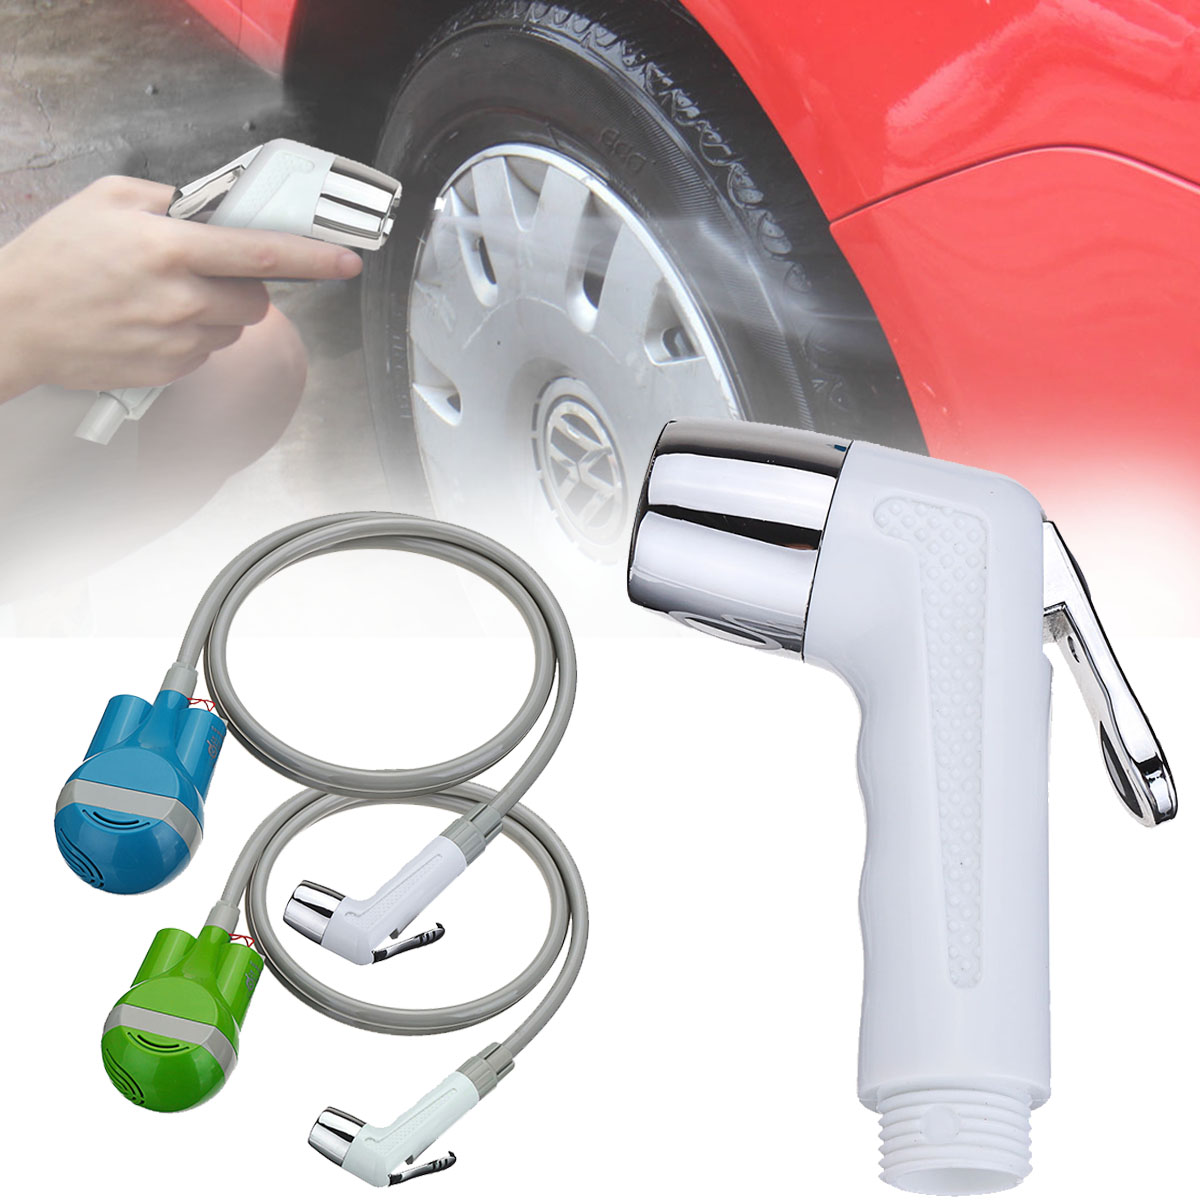 Outdoor Shower camping Washer Portable Car Baby USB Shower Water Pump Tank Rechargeable Nozzle Camper Travel Caravan Van Washer